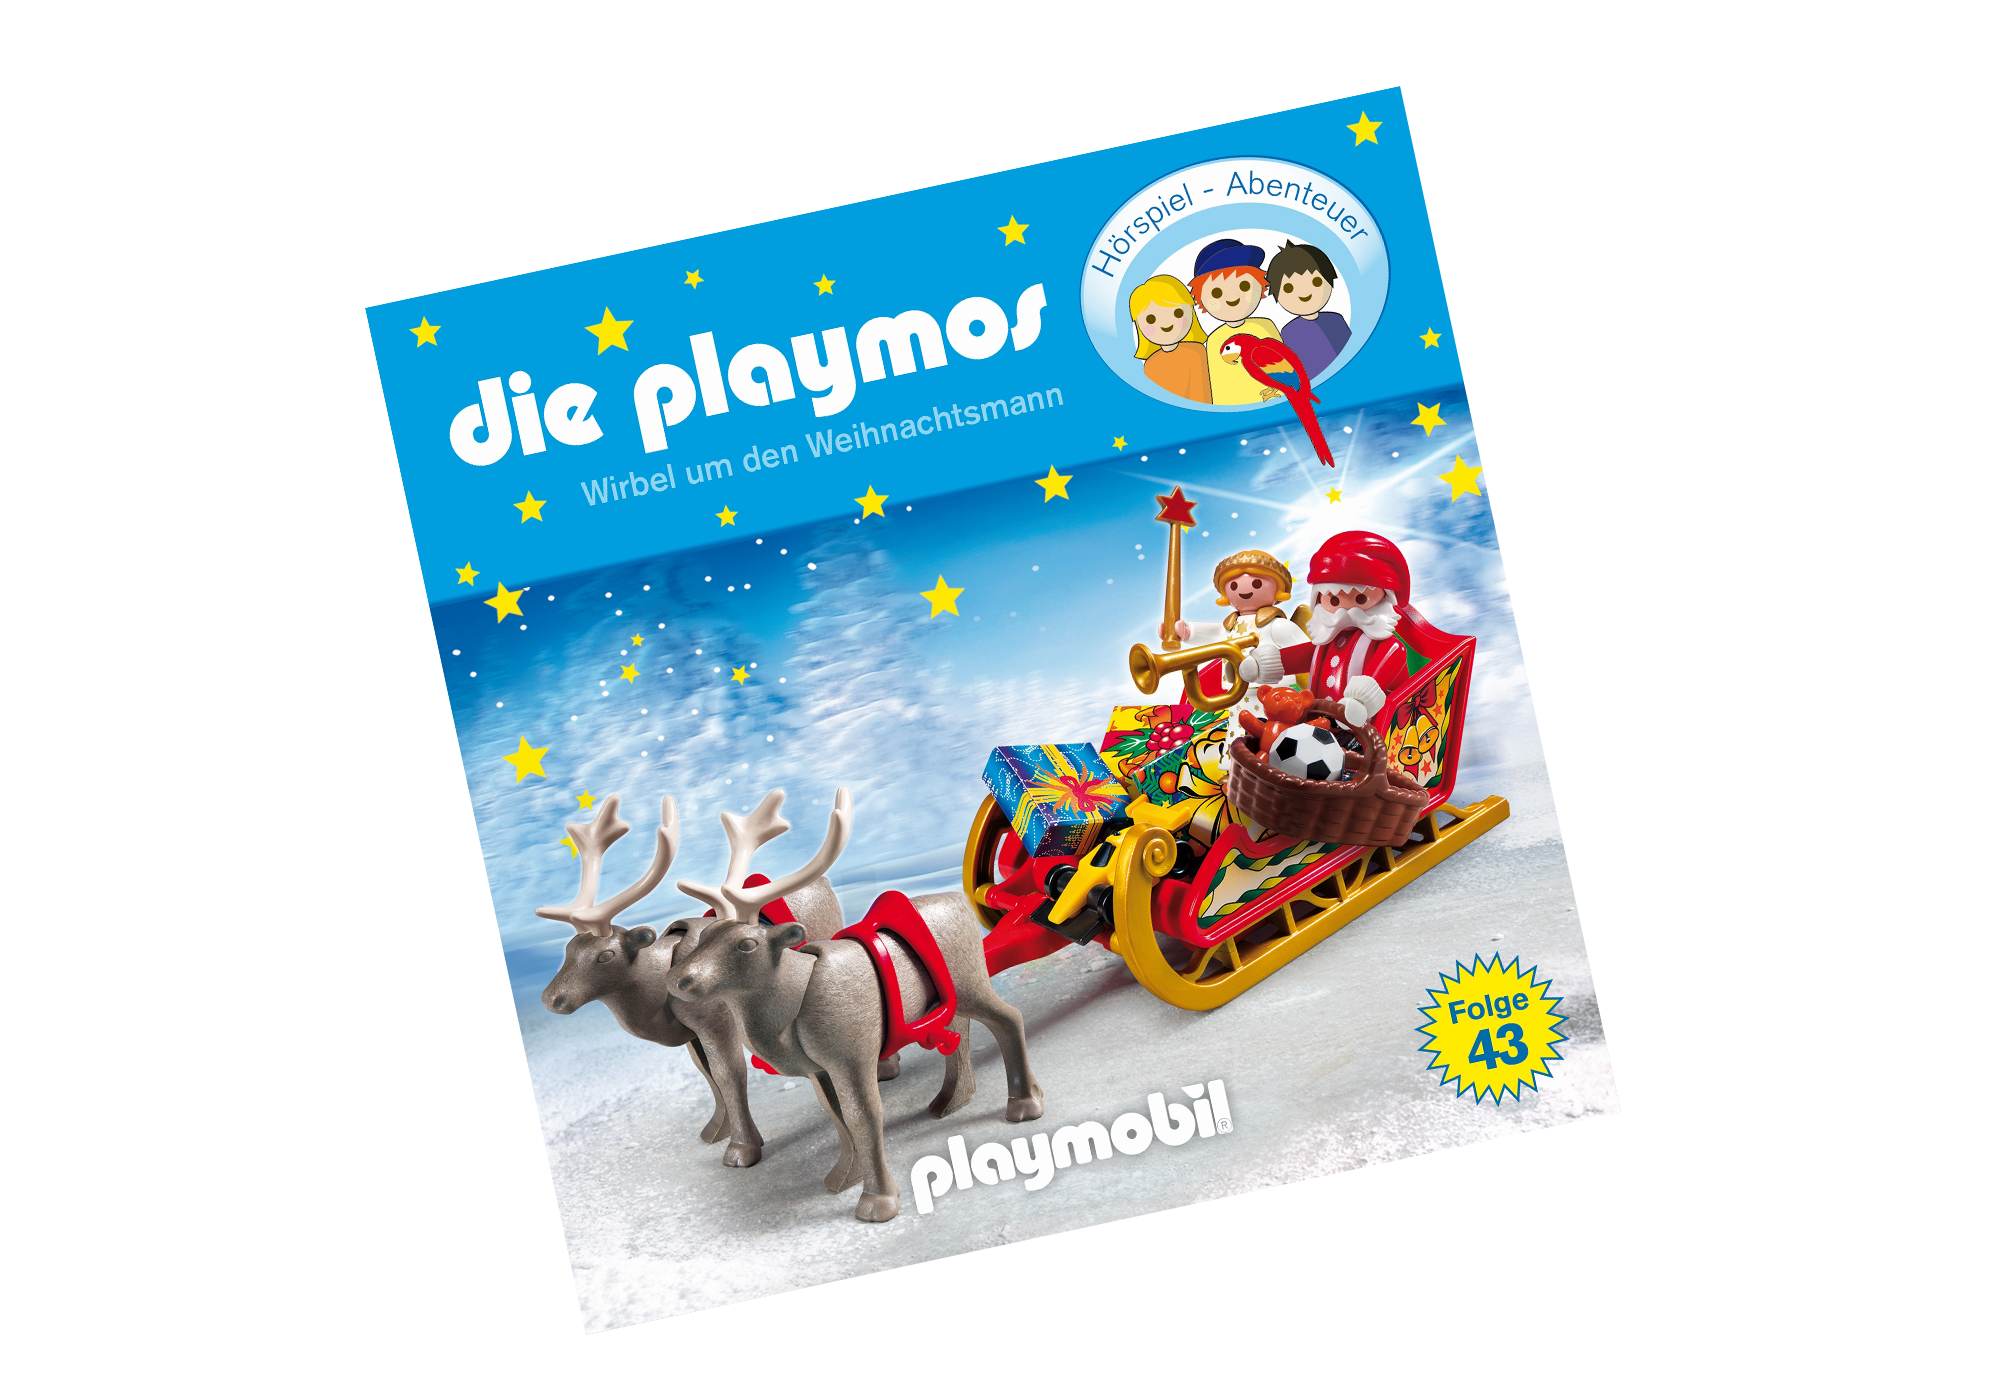 http://media.playmobil.com/i/playmobil/80456_product_detail